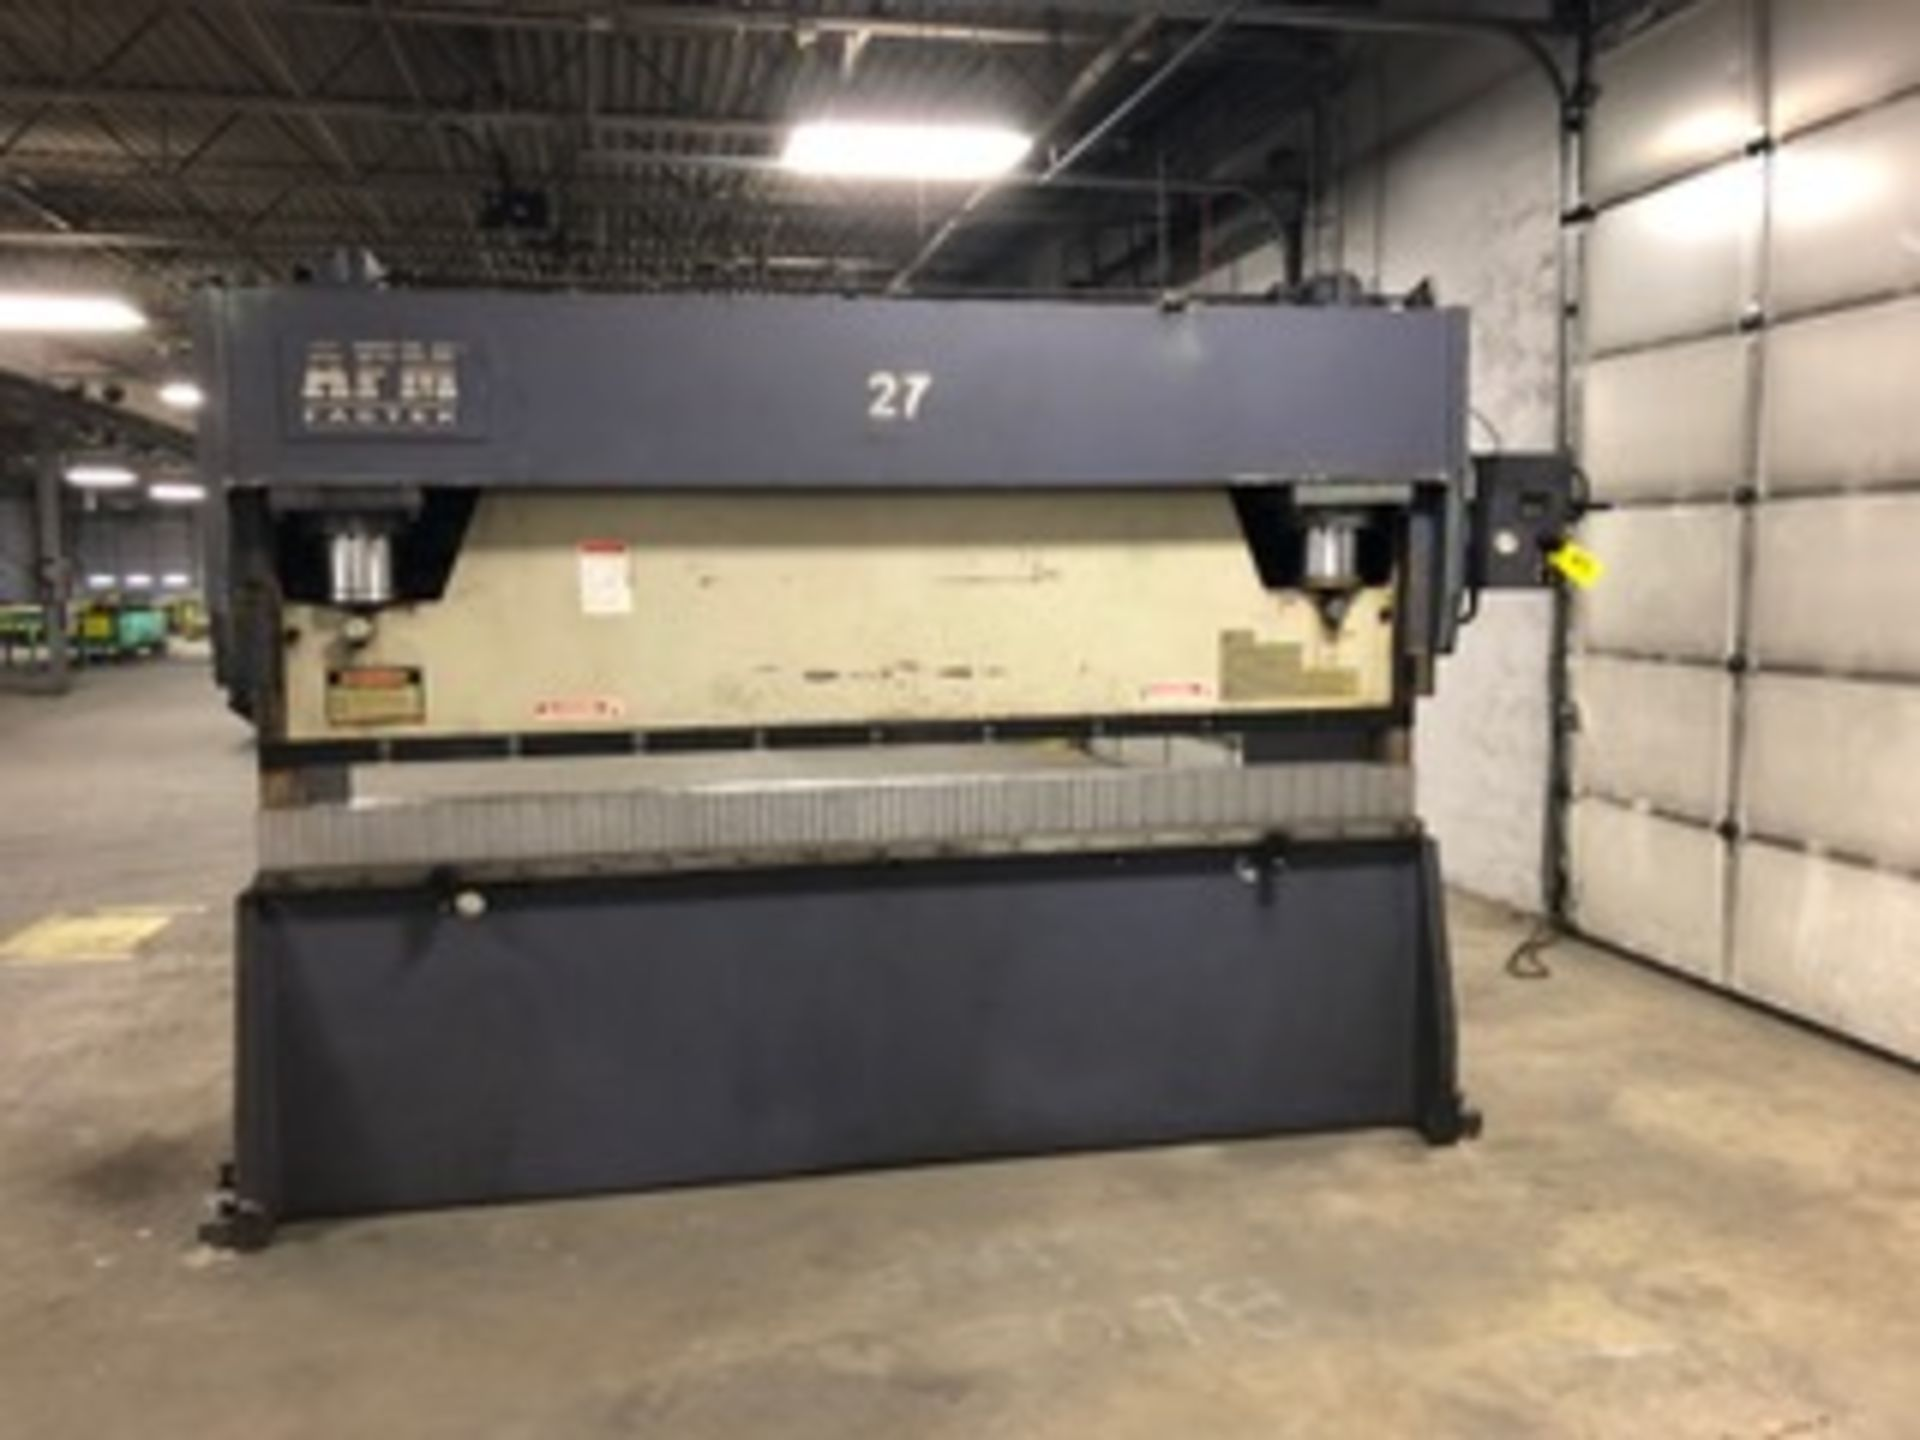 AFM Fabtek Model MPF31-165 Hydraulic Power Press Brake, Serial Number: CHPB9-90080T 165 Tons - - Image 2 of 8